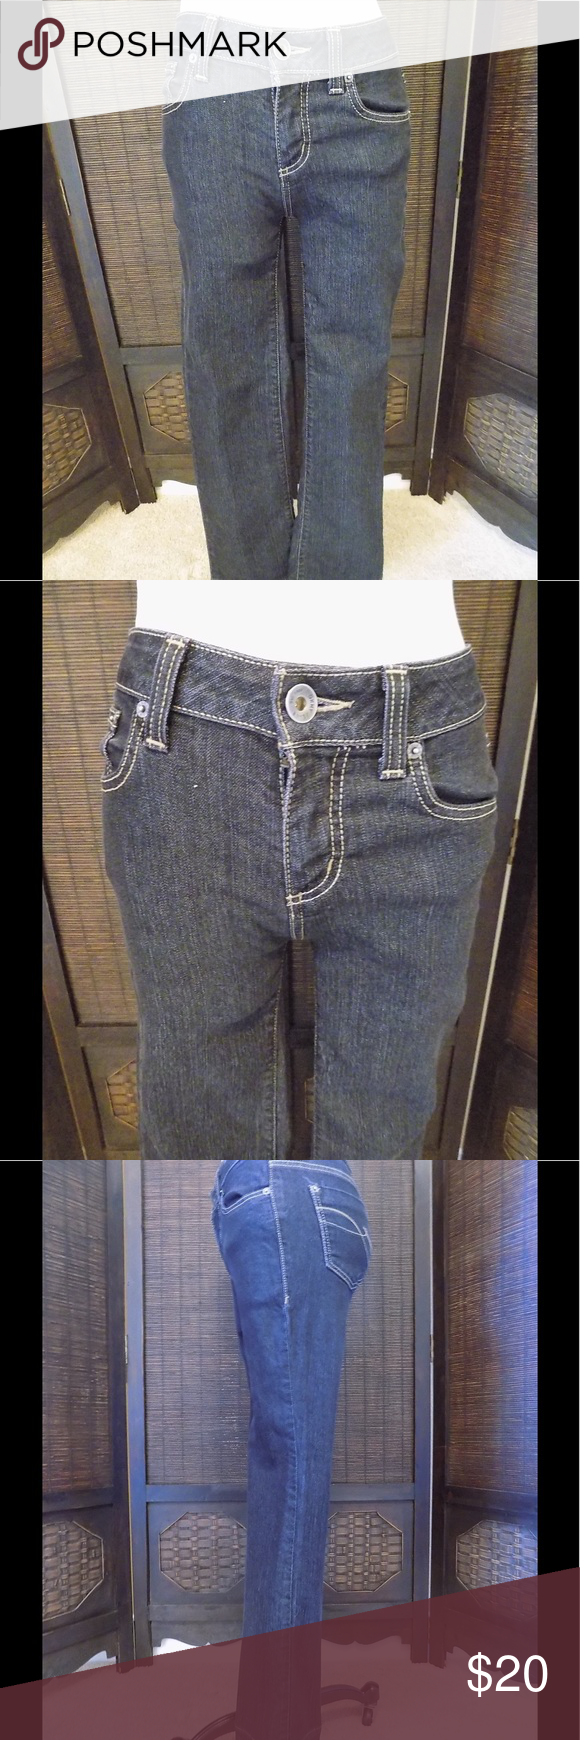 """DKNY Soho Jean Size 2R Nice pair of DKNY SOHO Jeans.  Size 2R.  71% cotton, 28% polyester and 1% spandex.  Dark wash.  In terrific condition.  Measurements are: 28"""" waist, 35"""" hip, 9"""" rise and 31"""" inseam.  Bootcut. DKNY Jeans Boot Cut"""